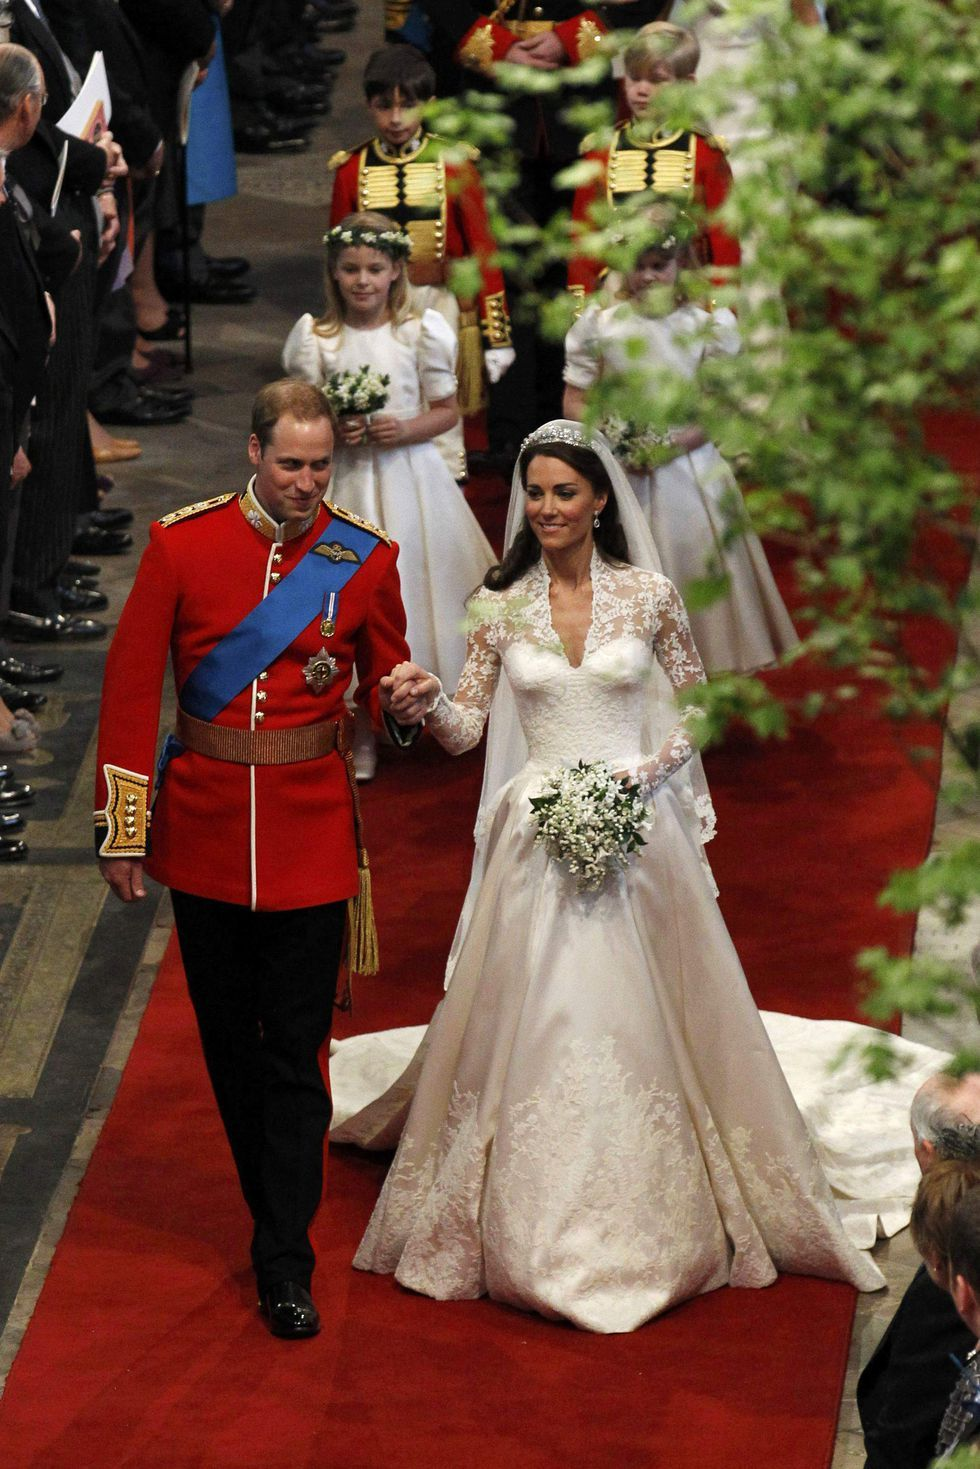 30 Beautiful Wonderful Heartwarmingly Loved Up Photos From Prince William And Kate Middleton S Royal Wedding Kate Middleton Wedding Dress Kate Middleton Wedding Royal Wedding Dress